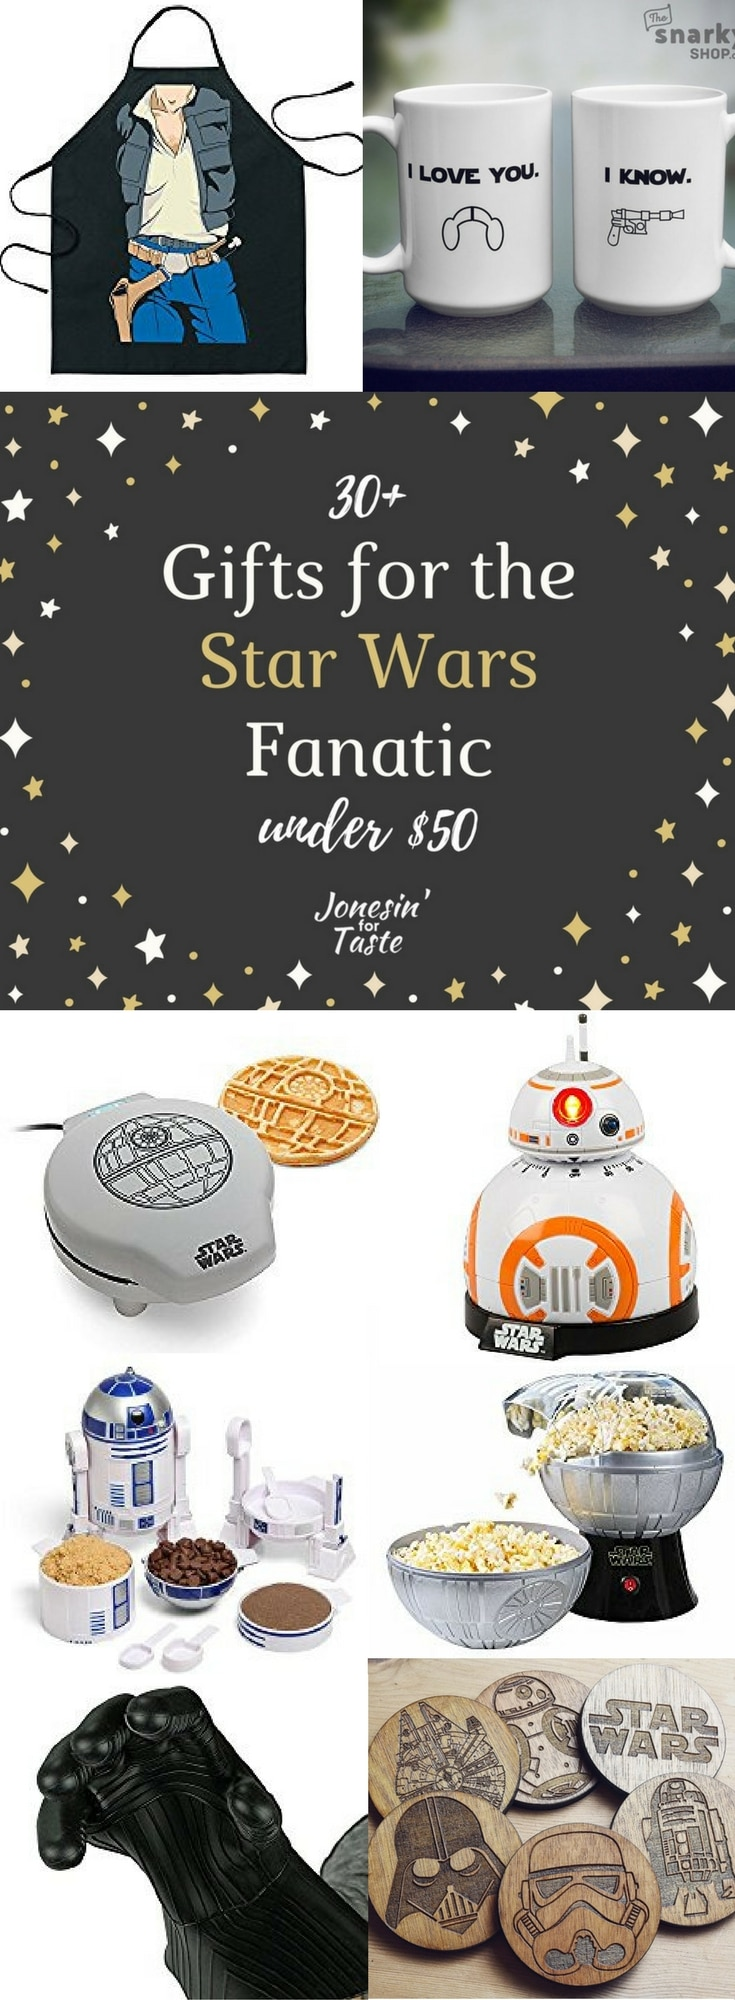 These 30+ kitchen Star Wars gifts under $50 are sure to make any Star Wars fan happy. Perfect ideas for Father's Day or birthdays